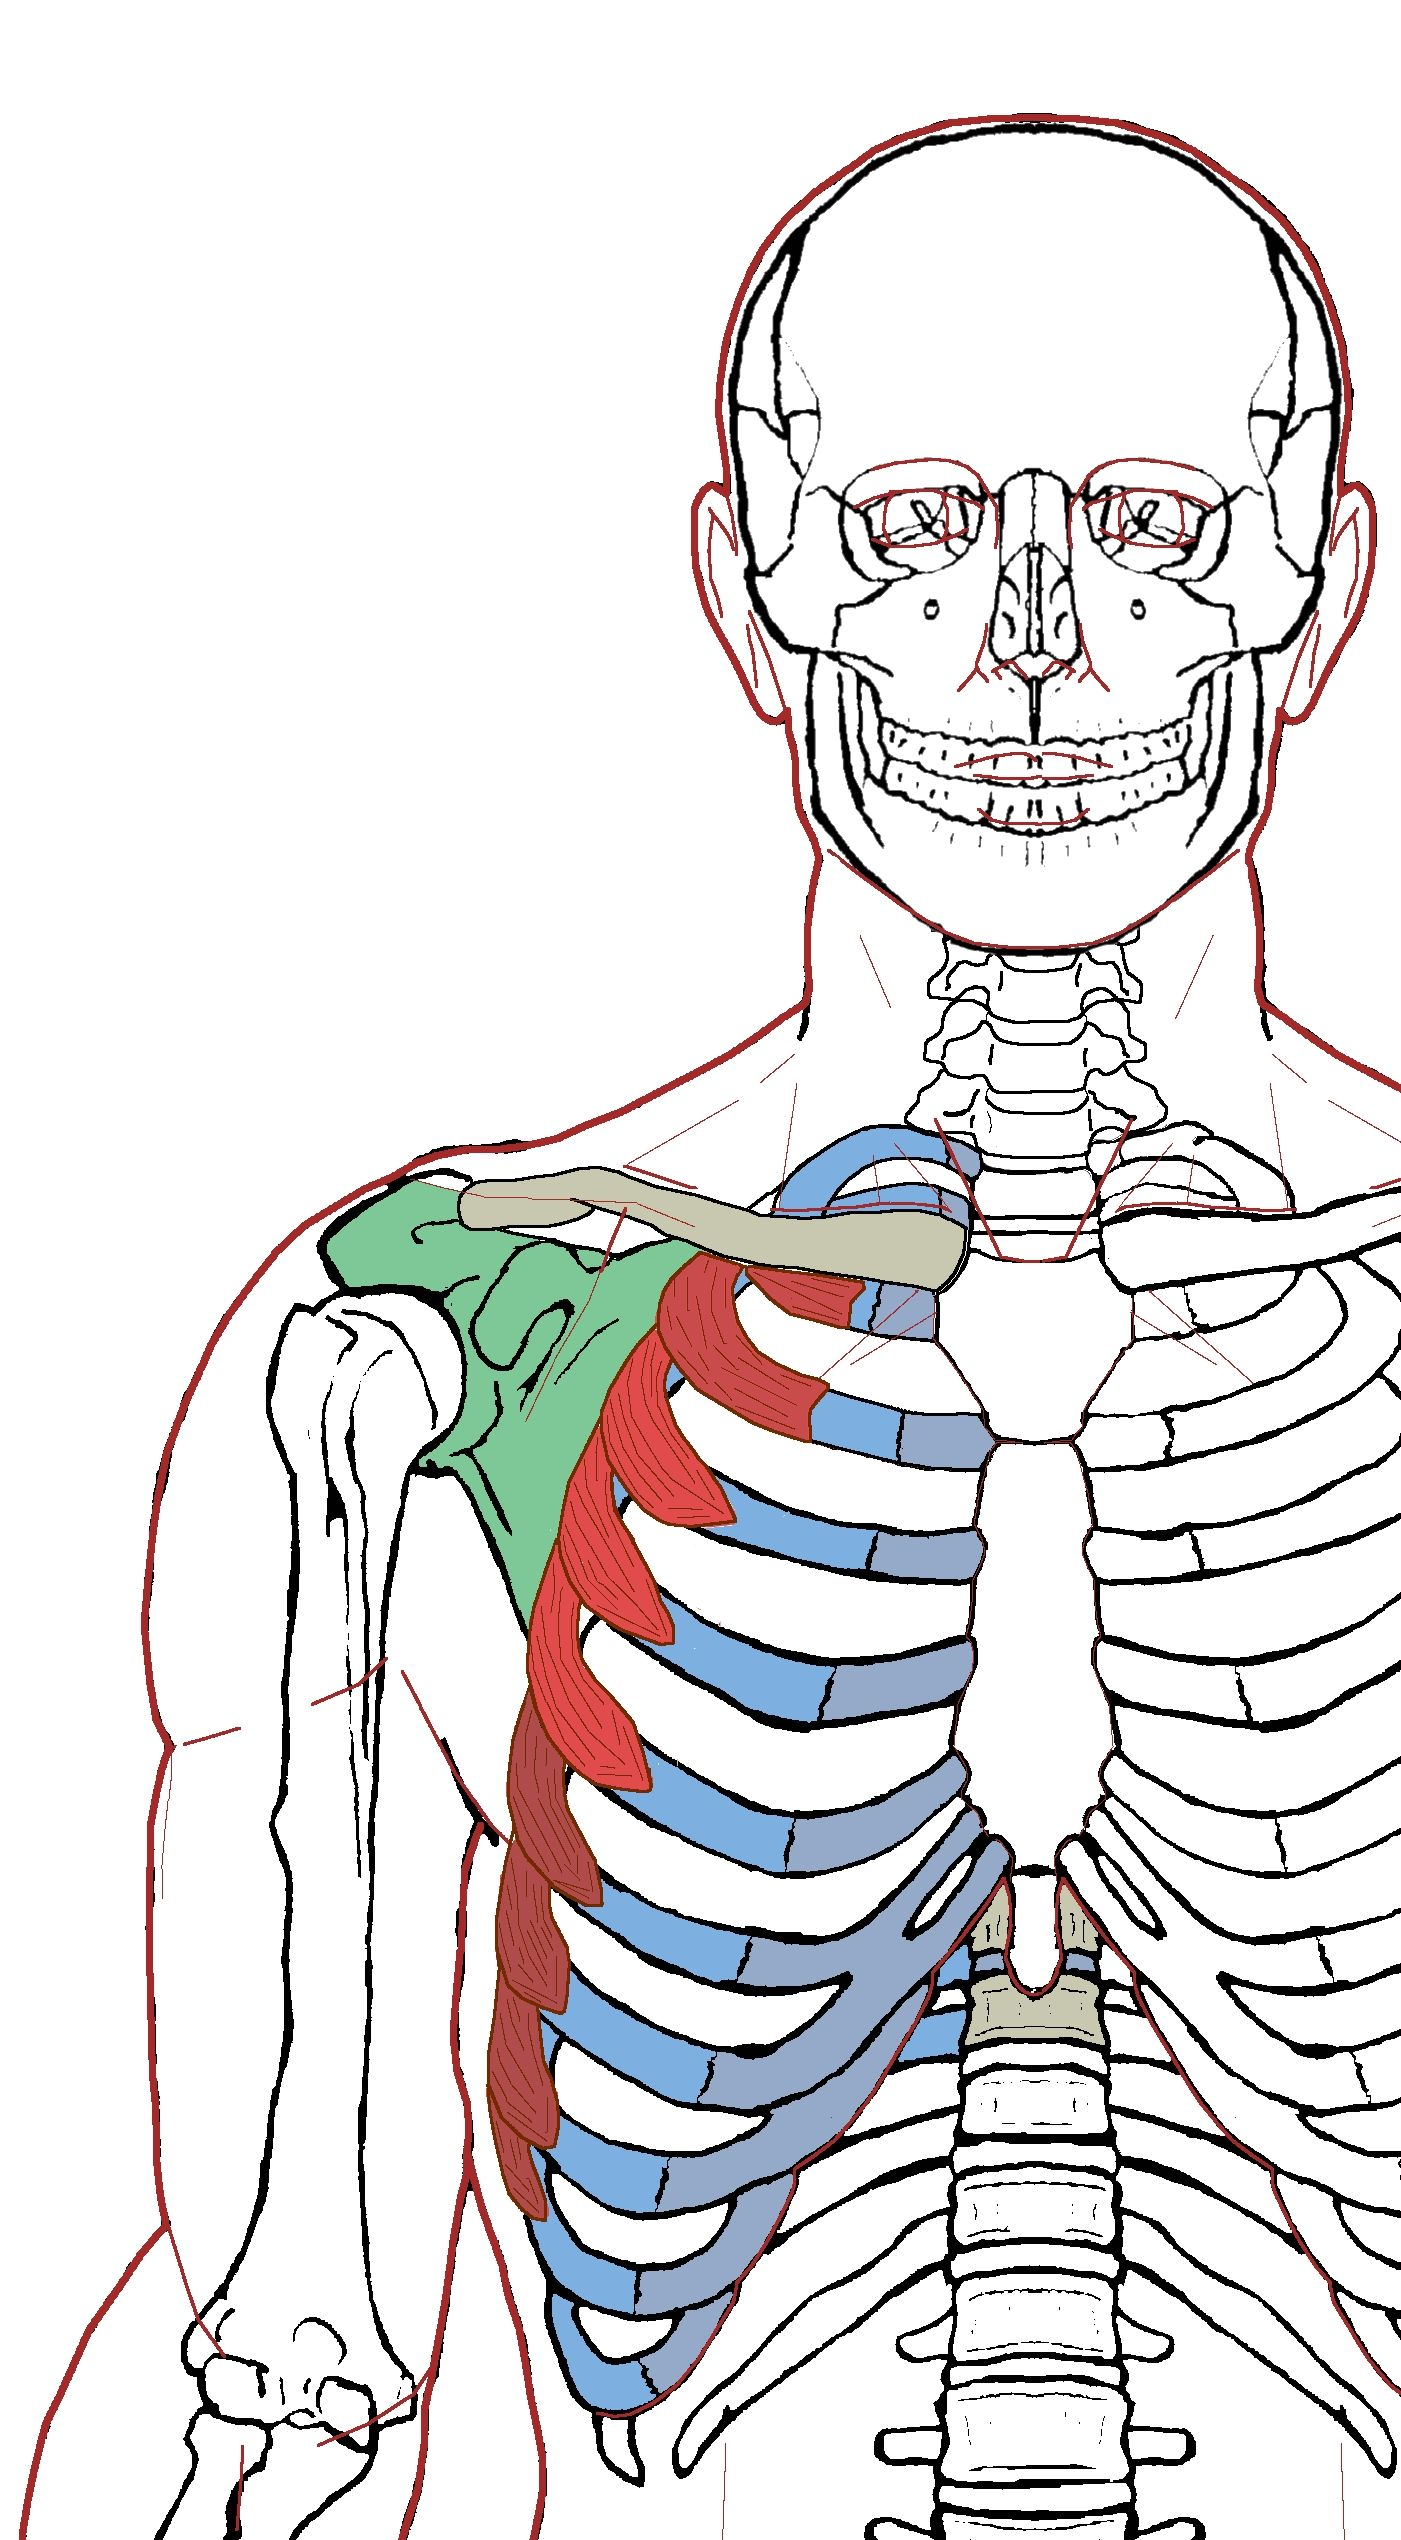 Serratus Anterior – Functional Anatomy | Chest muscles, Anatomy and ...